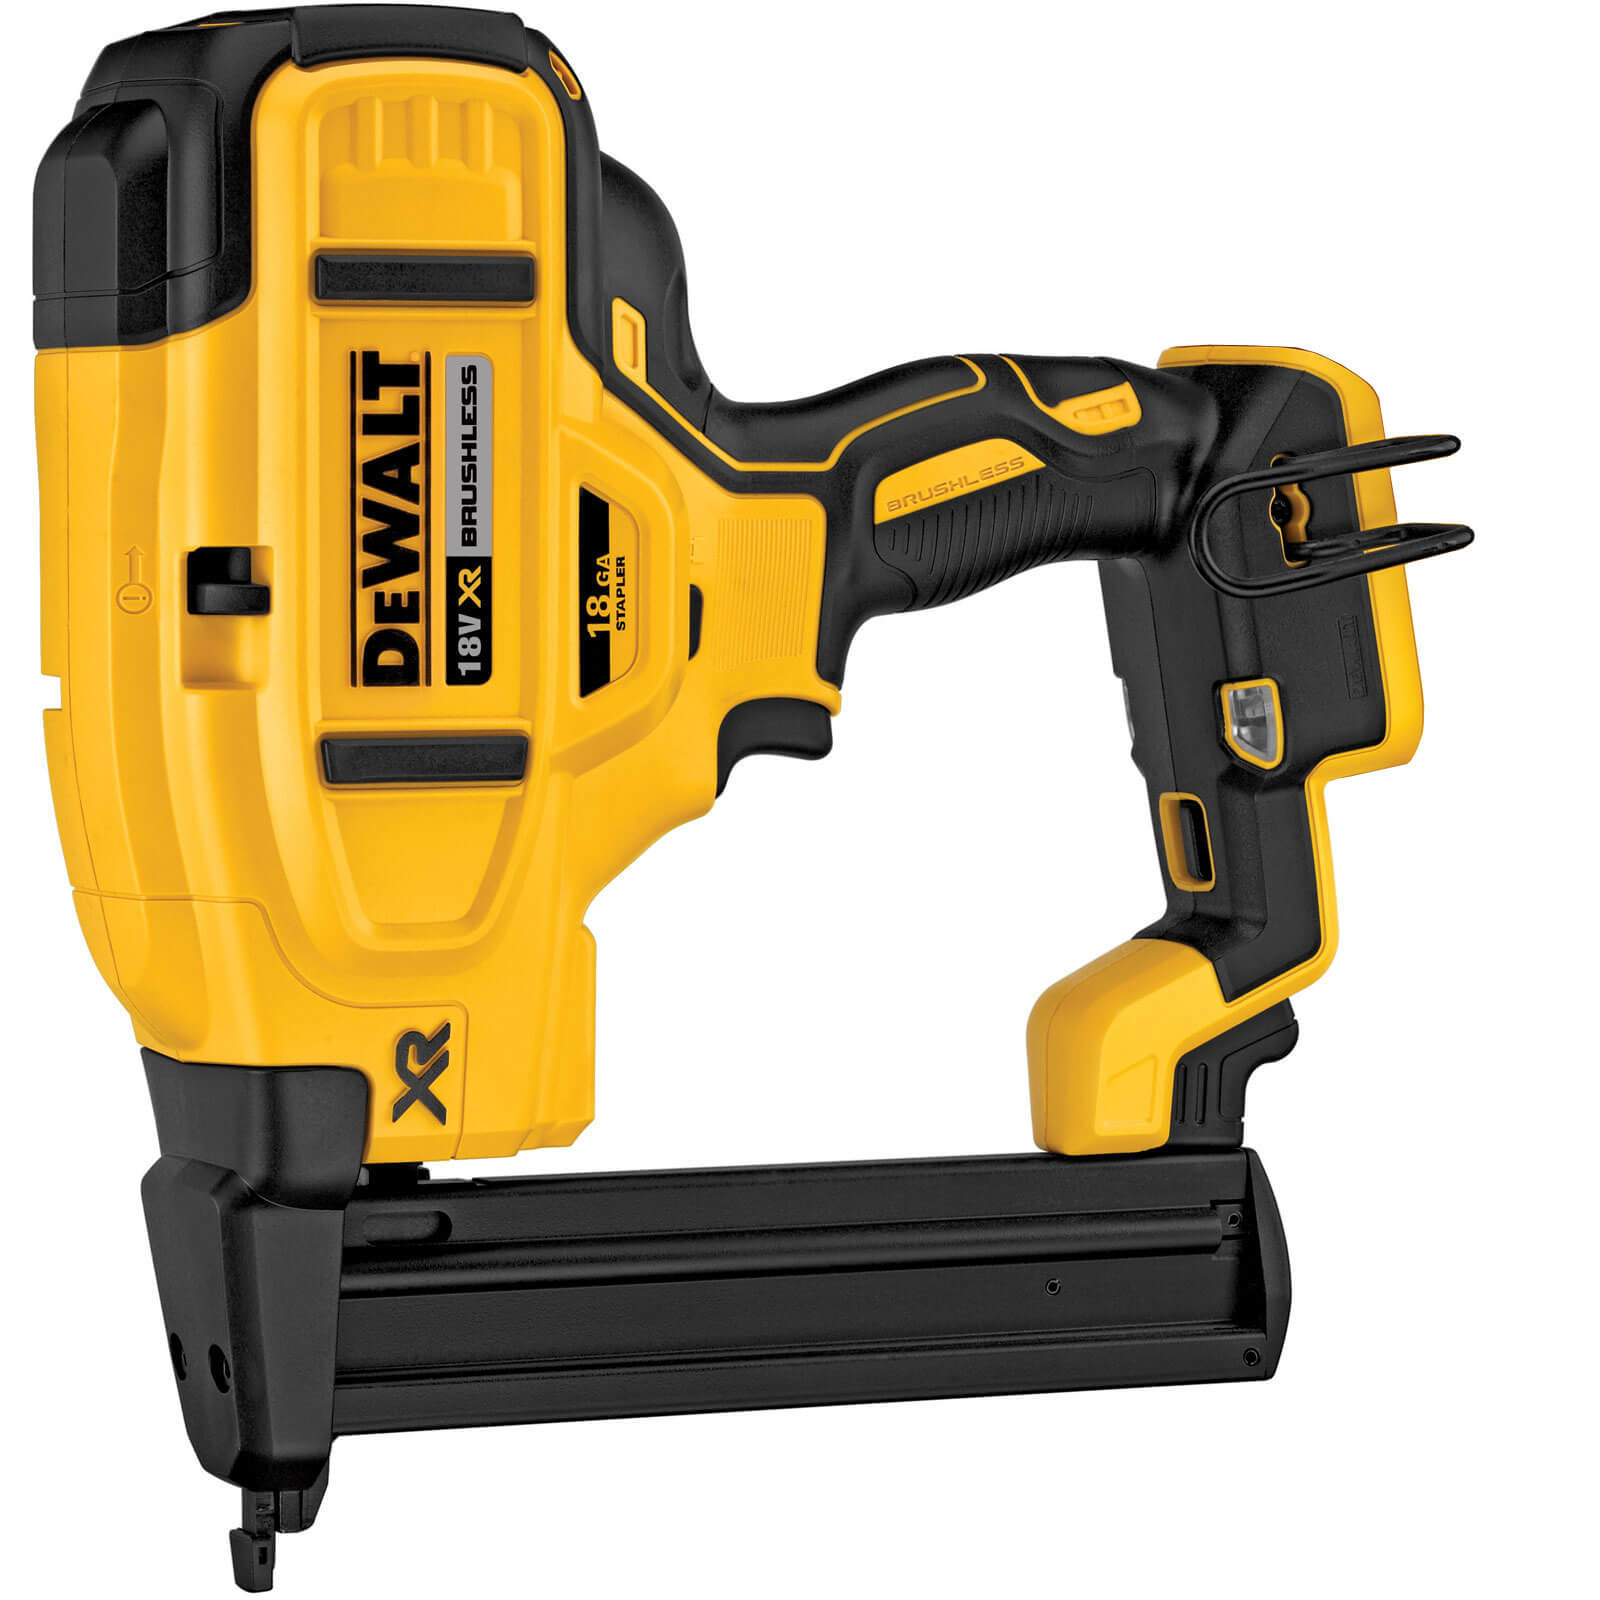 DeWalt DCN681N-XJ 18V XR Brushless 18GA Narrow Crown Stapler Bare Unit